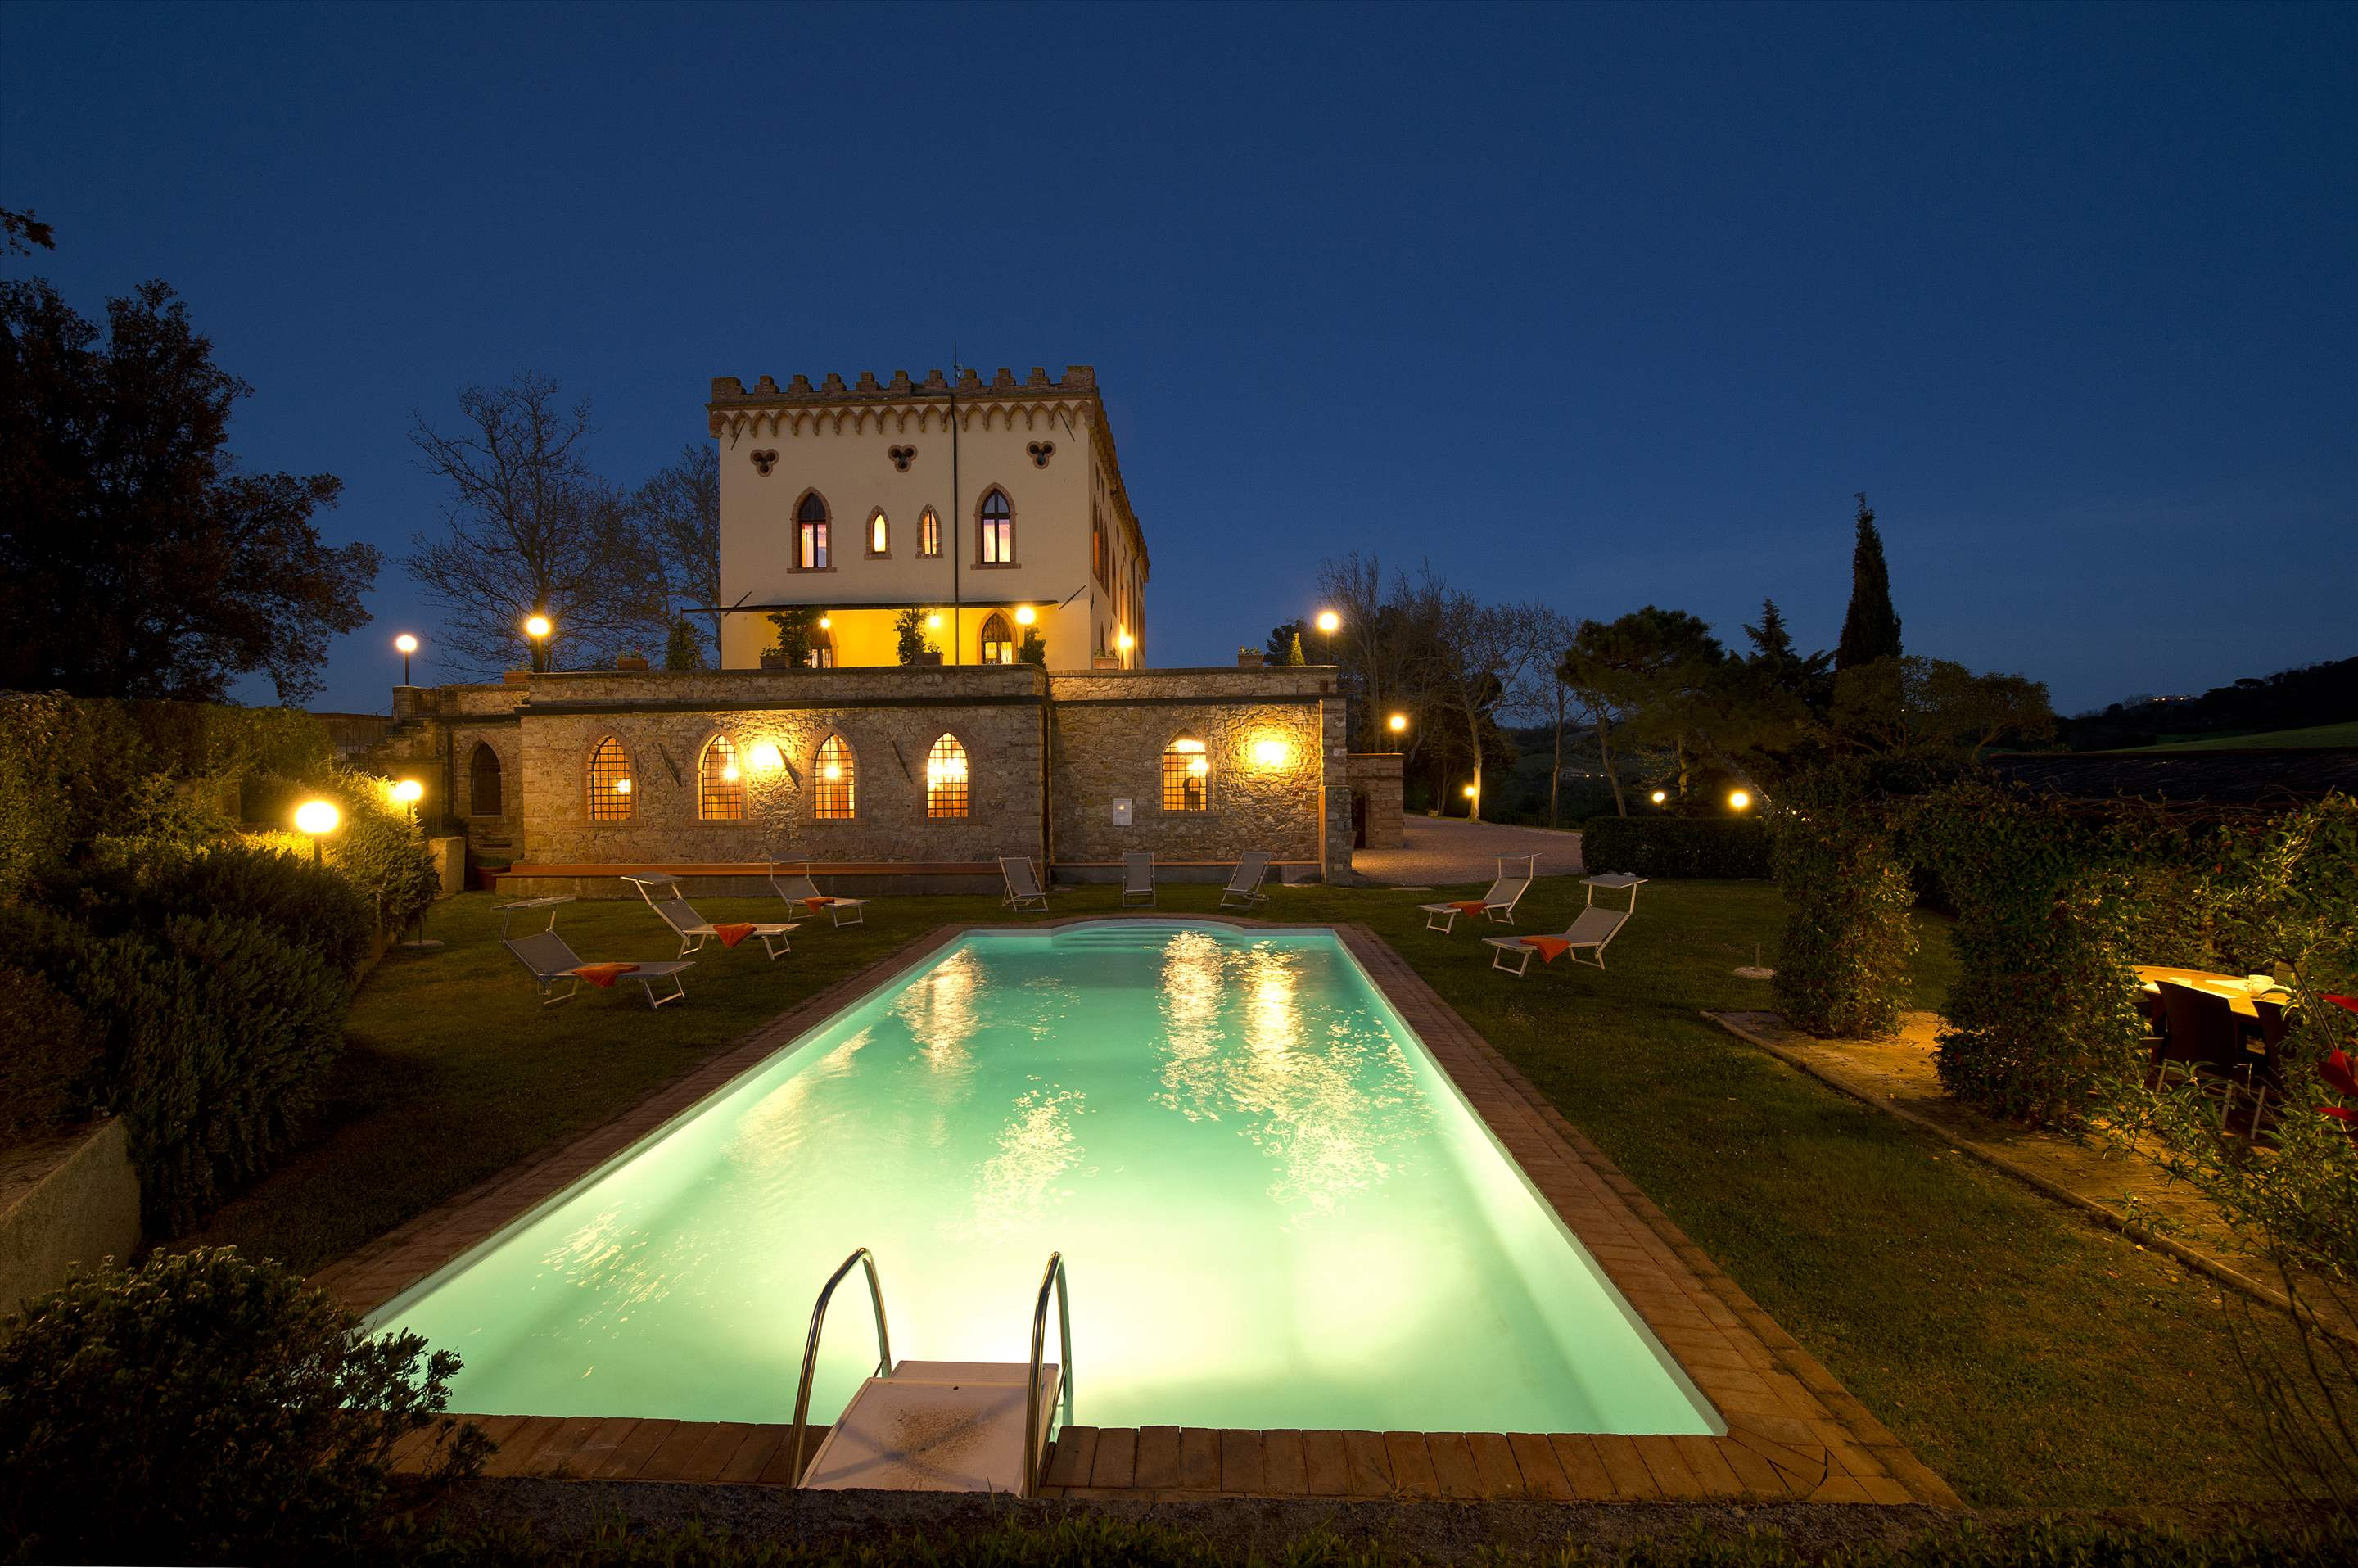 Villa Di Archi & Dependance, 9 bedroom villa in Tuscany Coast, Tuscany Photo #30